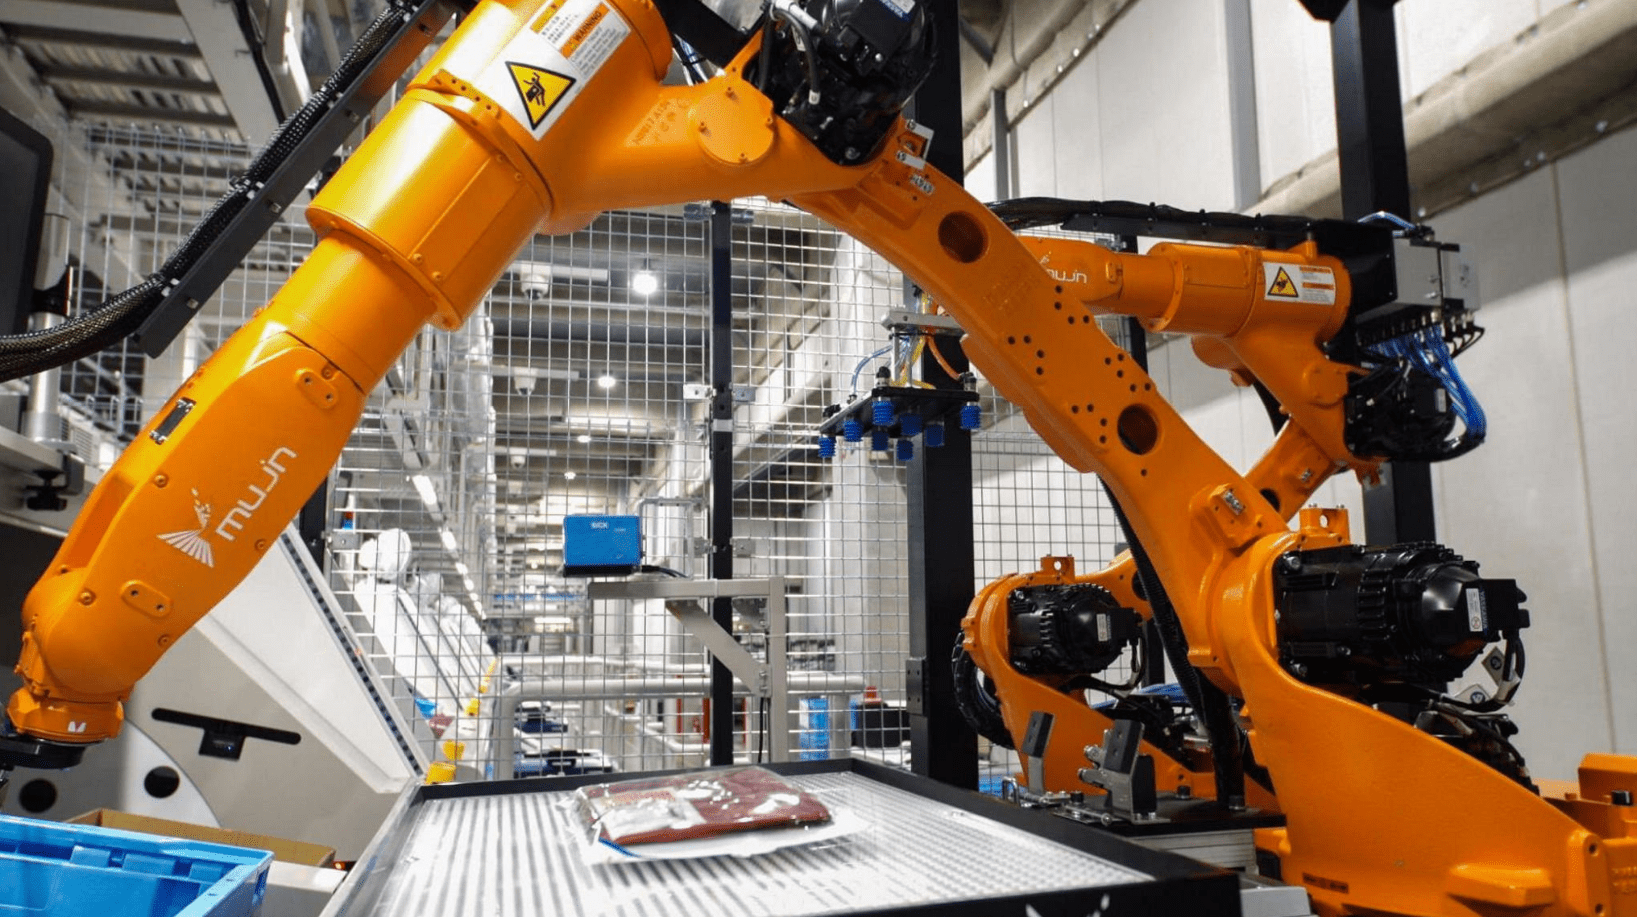 An orange Mujn robot and a folded t-shirt in a factory